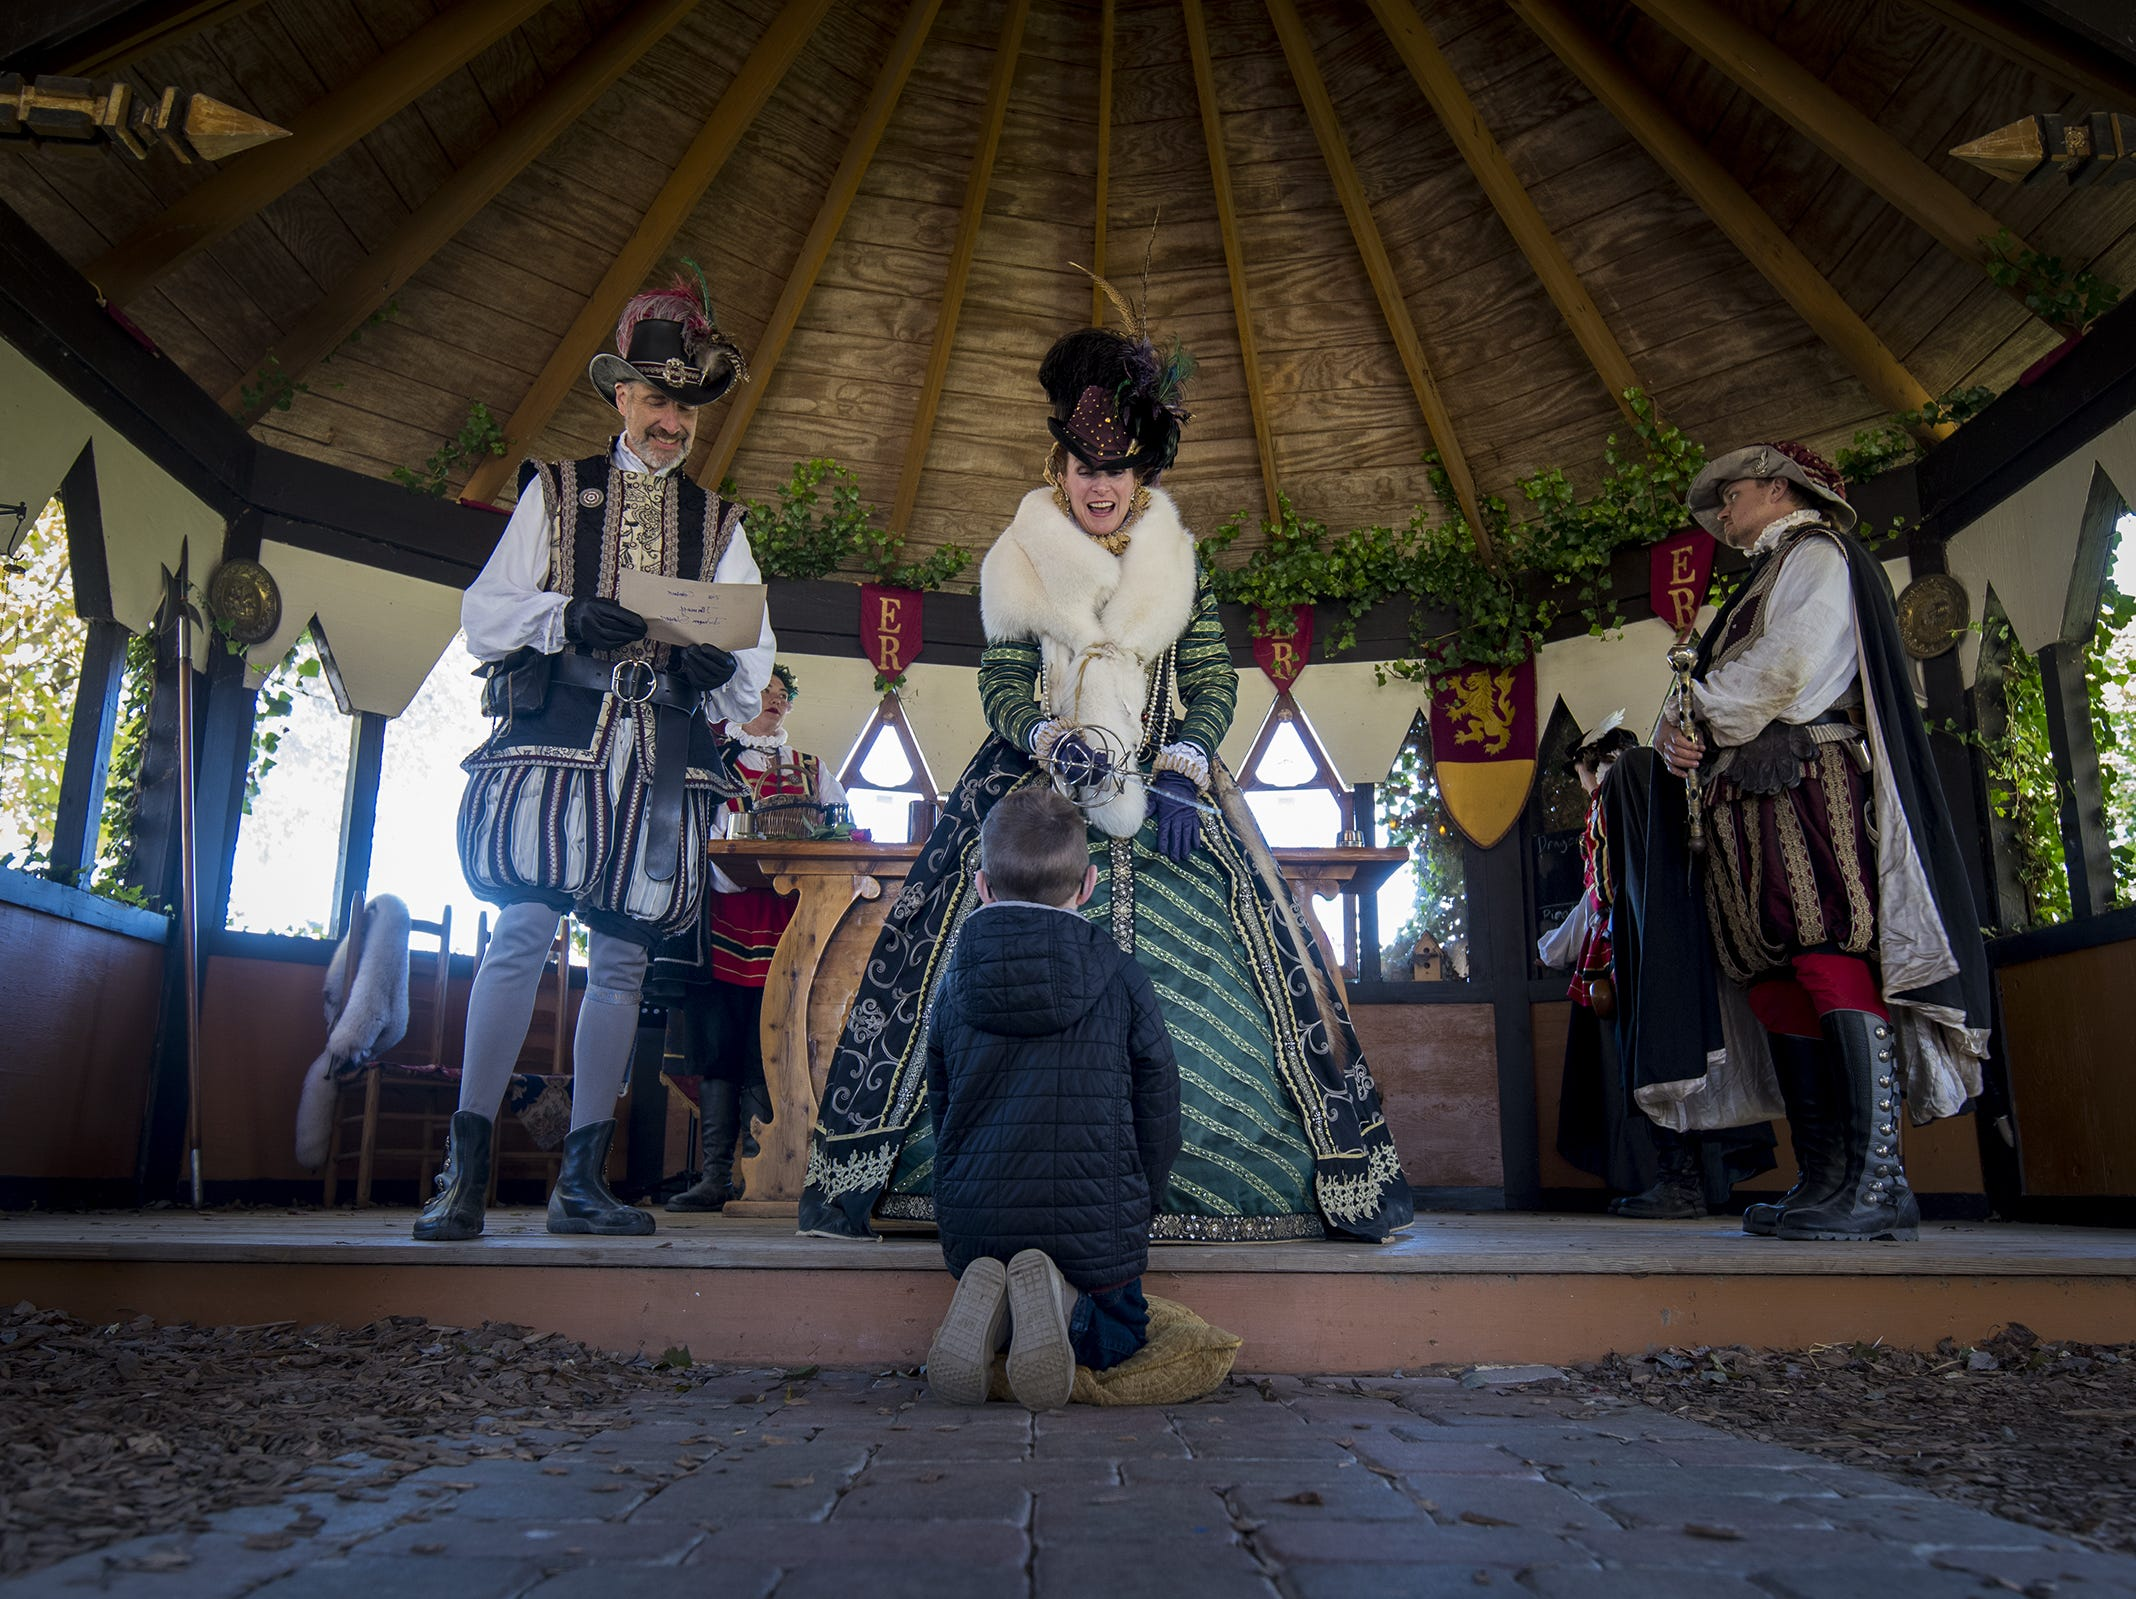 Timmy Manning, 7, of Anderson is knighted during Romance Weekend at the Ohio Renaissance Festival Sunday, October 21, 2018 in Waynesville, Ohio.